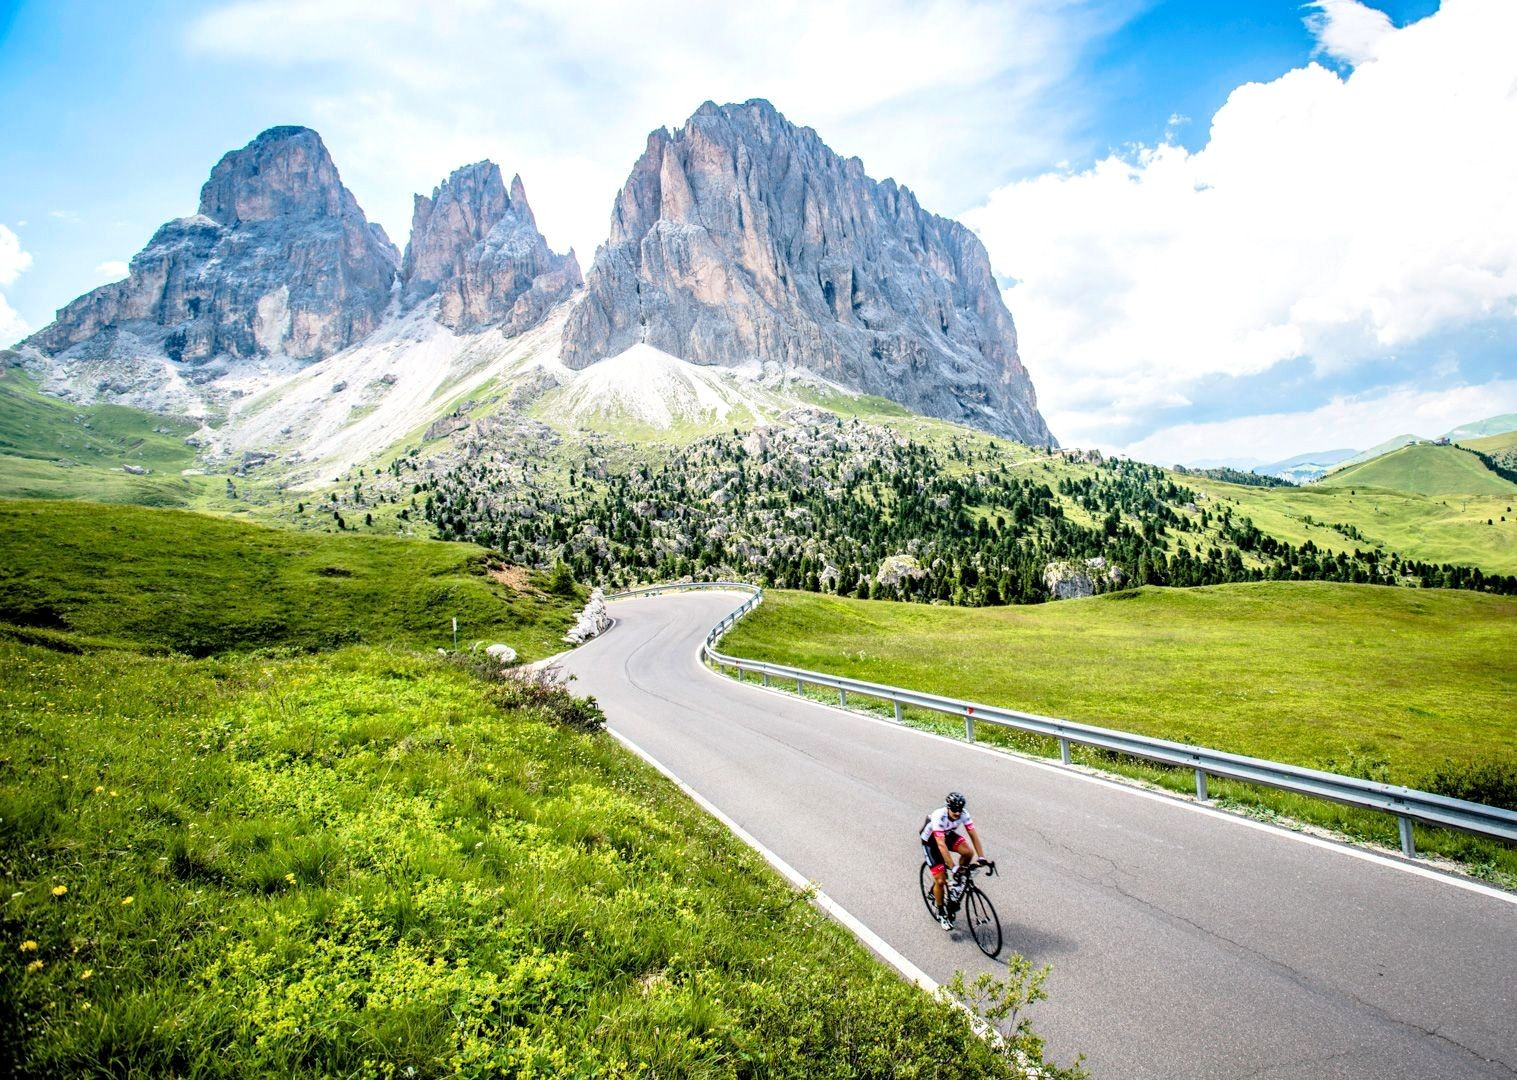 dolomites-guided-road-cycling-holiday-in-italy.jpg - Italy - Italian Dolomites - Guided Road Cycling Holiday - Italia Road Cycling